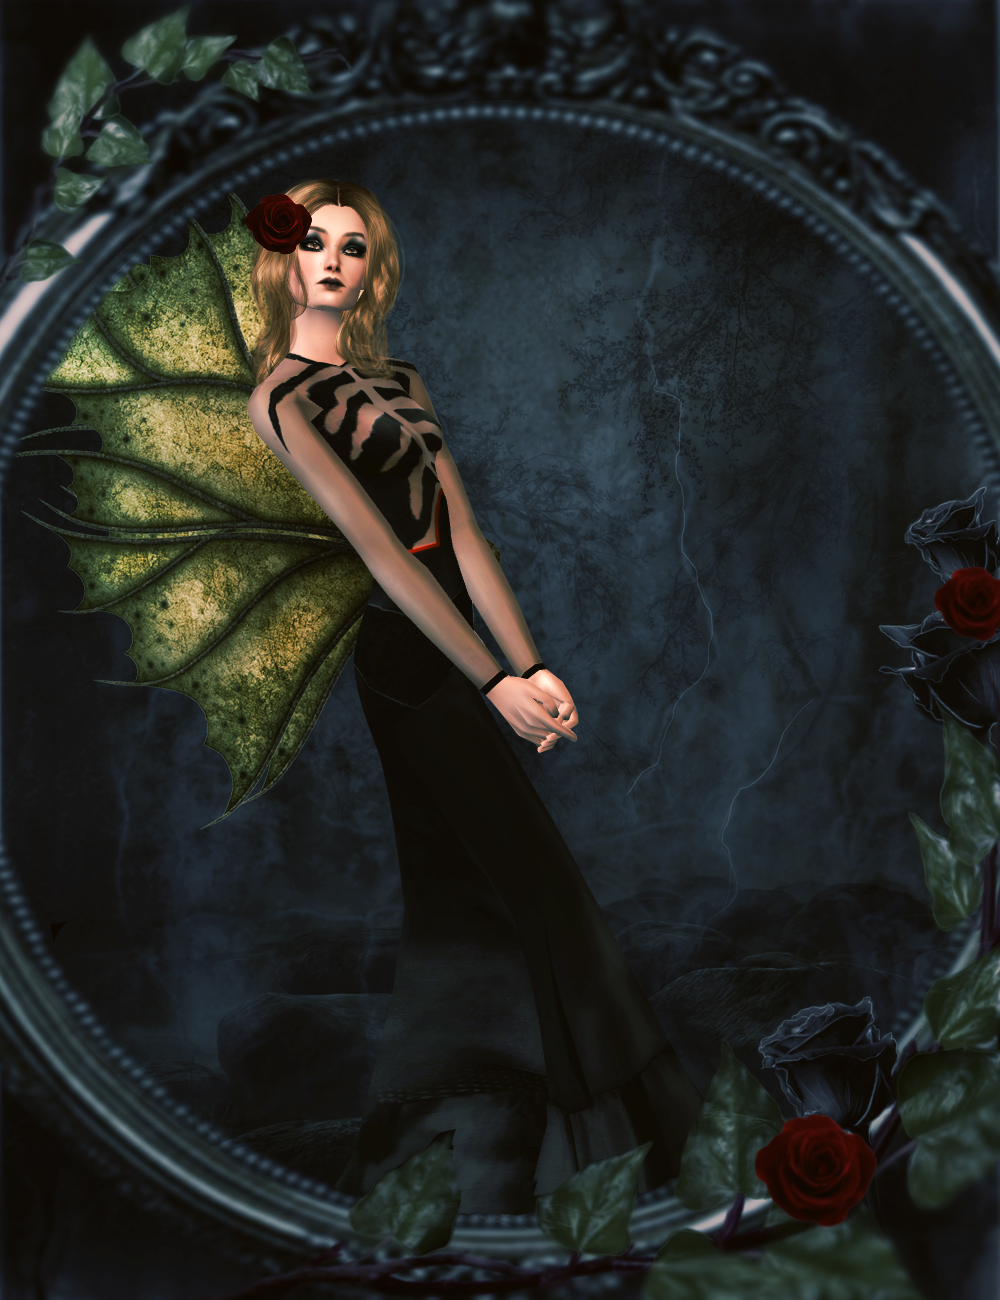 Juge ~Anastasia Smith 563597background1bysisterslaughter165d602e9d